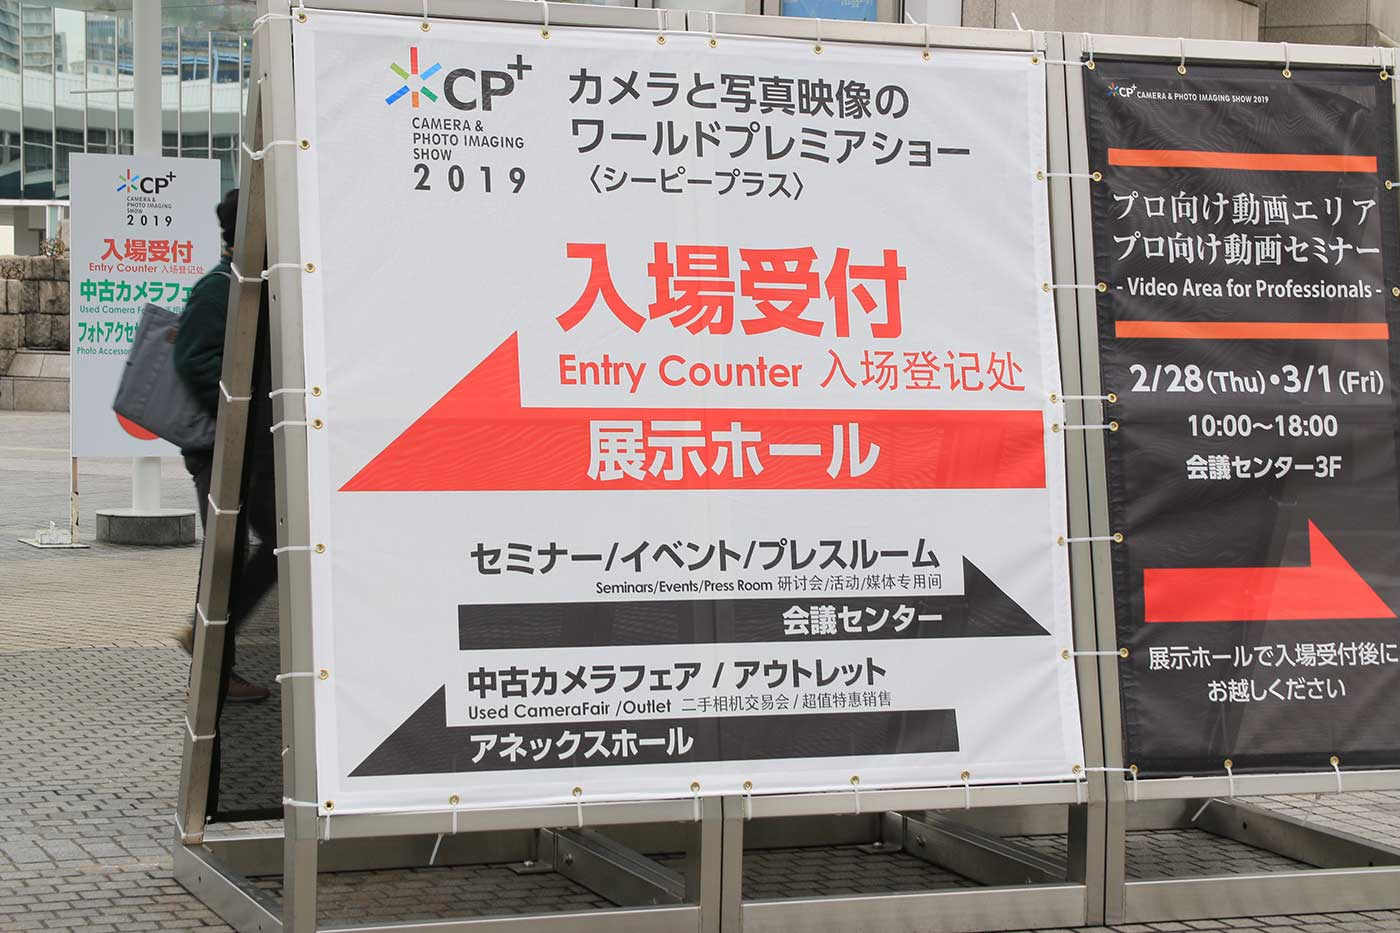 CP+2019の案内板